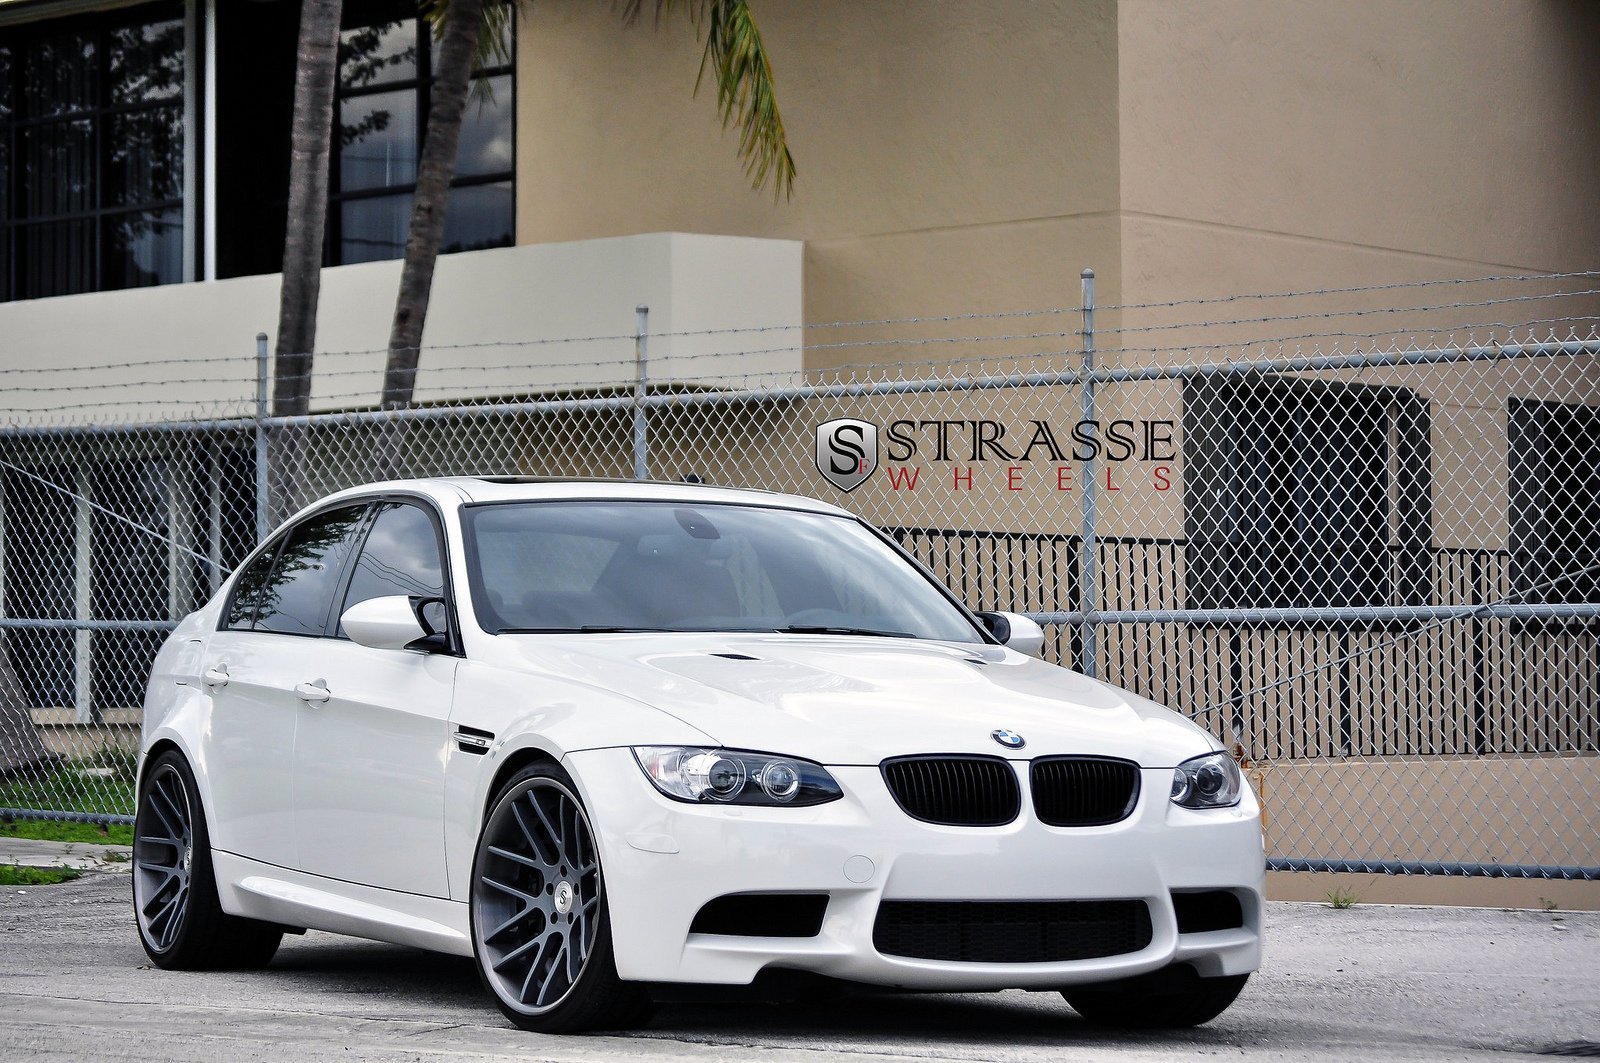 bmw e90 strasse tuning wheels m3 white wallpaper 1600x1063 391207 wallpaperup. Black Bedroom Furniture Sets. Home Design Ideas